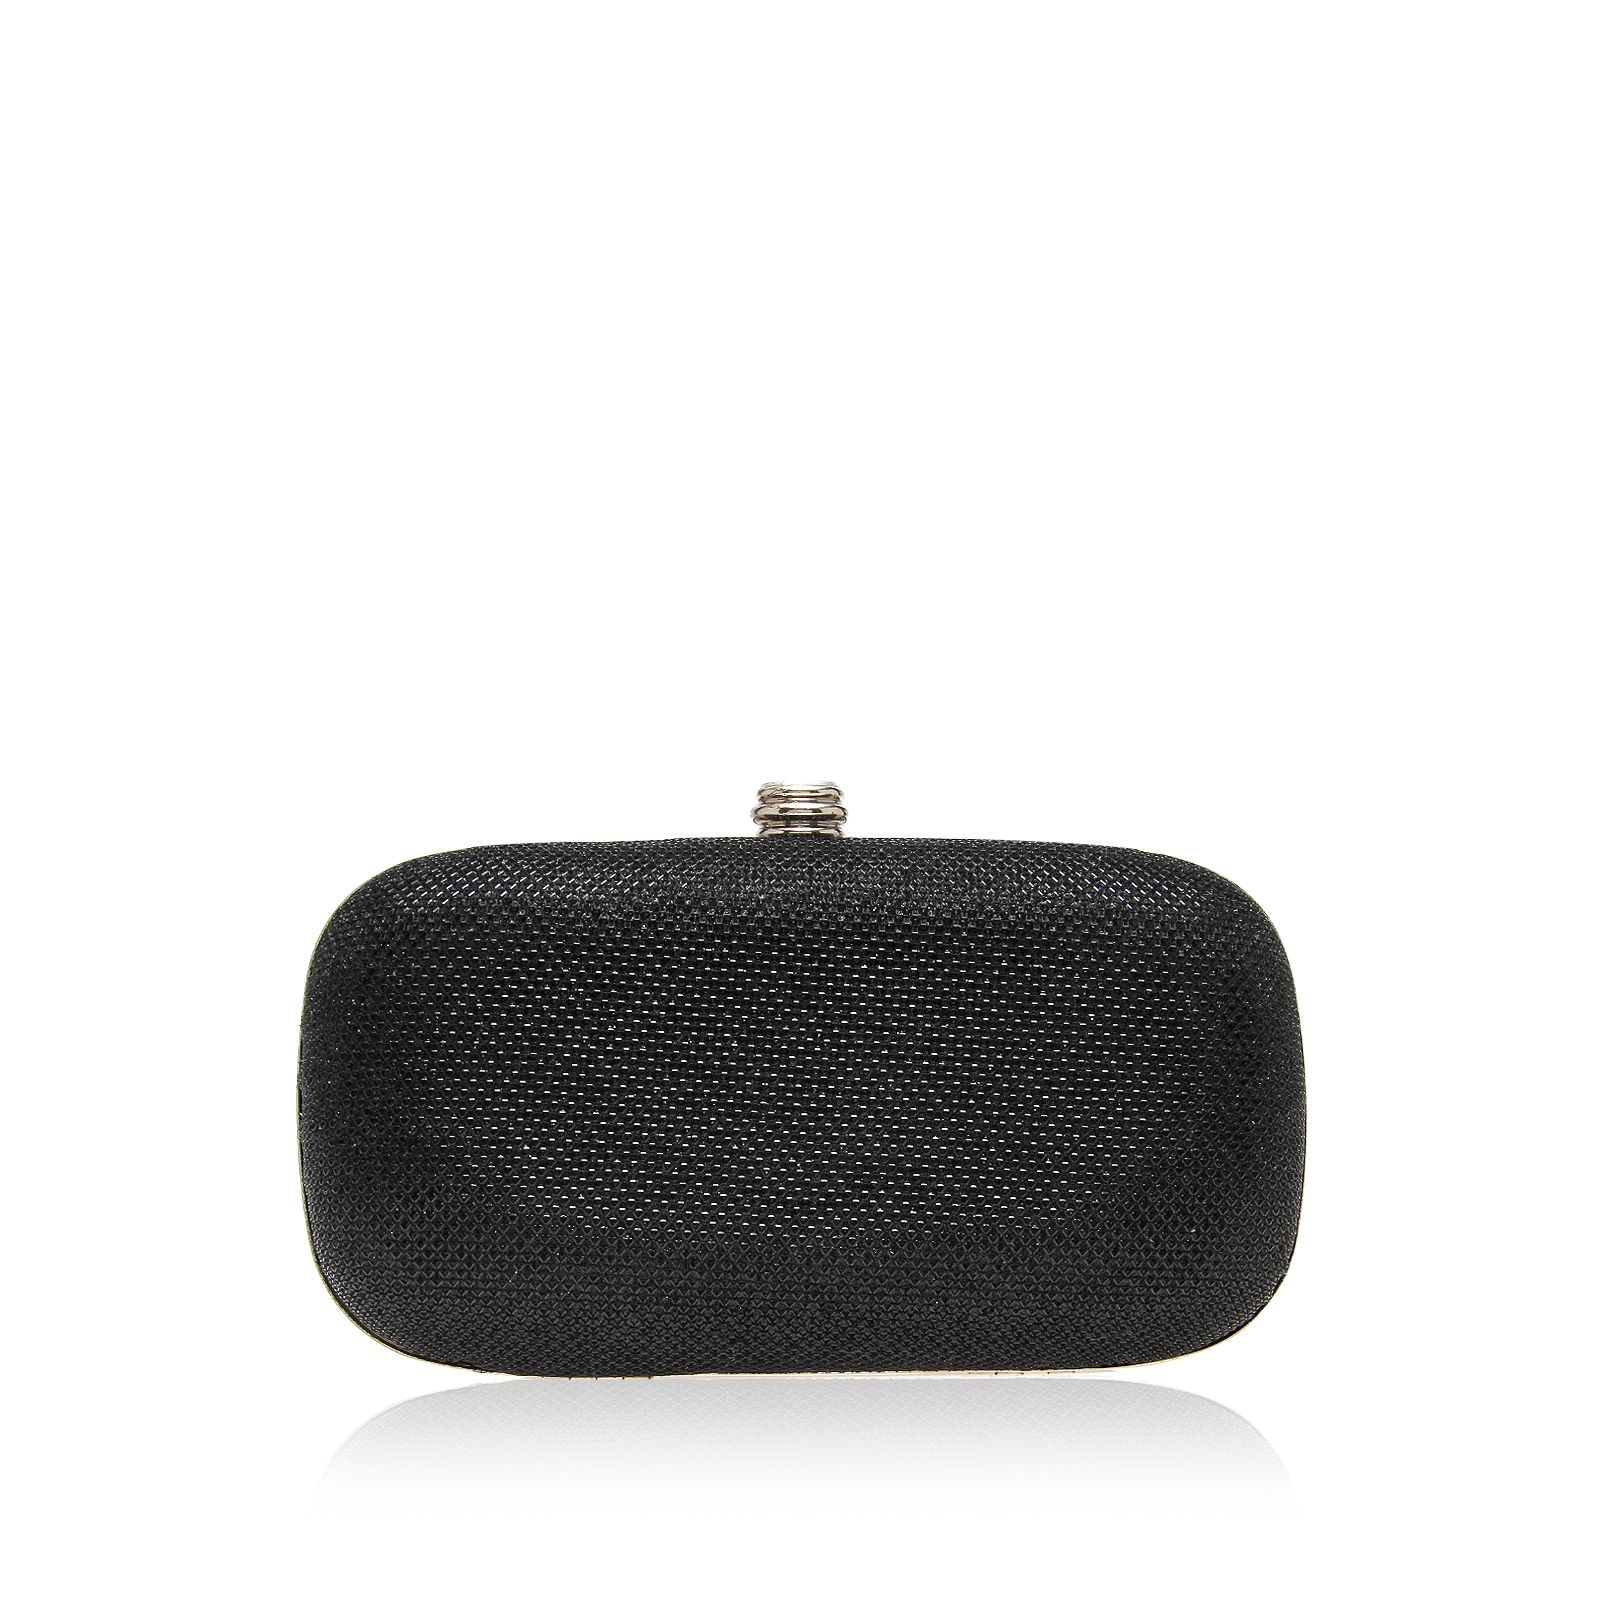 Carvela Darling clutch bag, Black